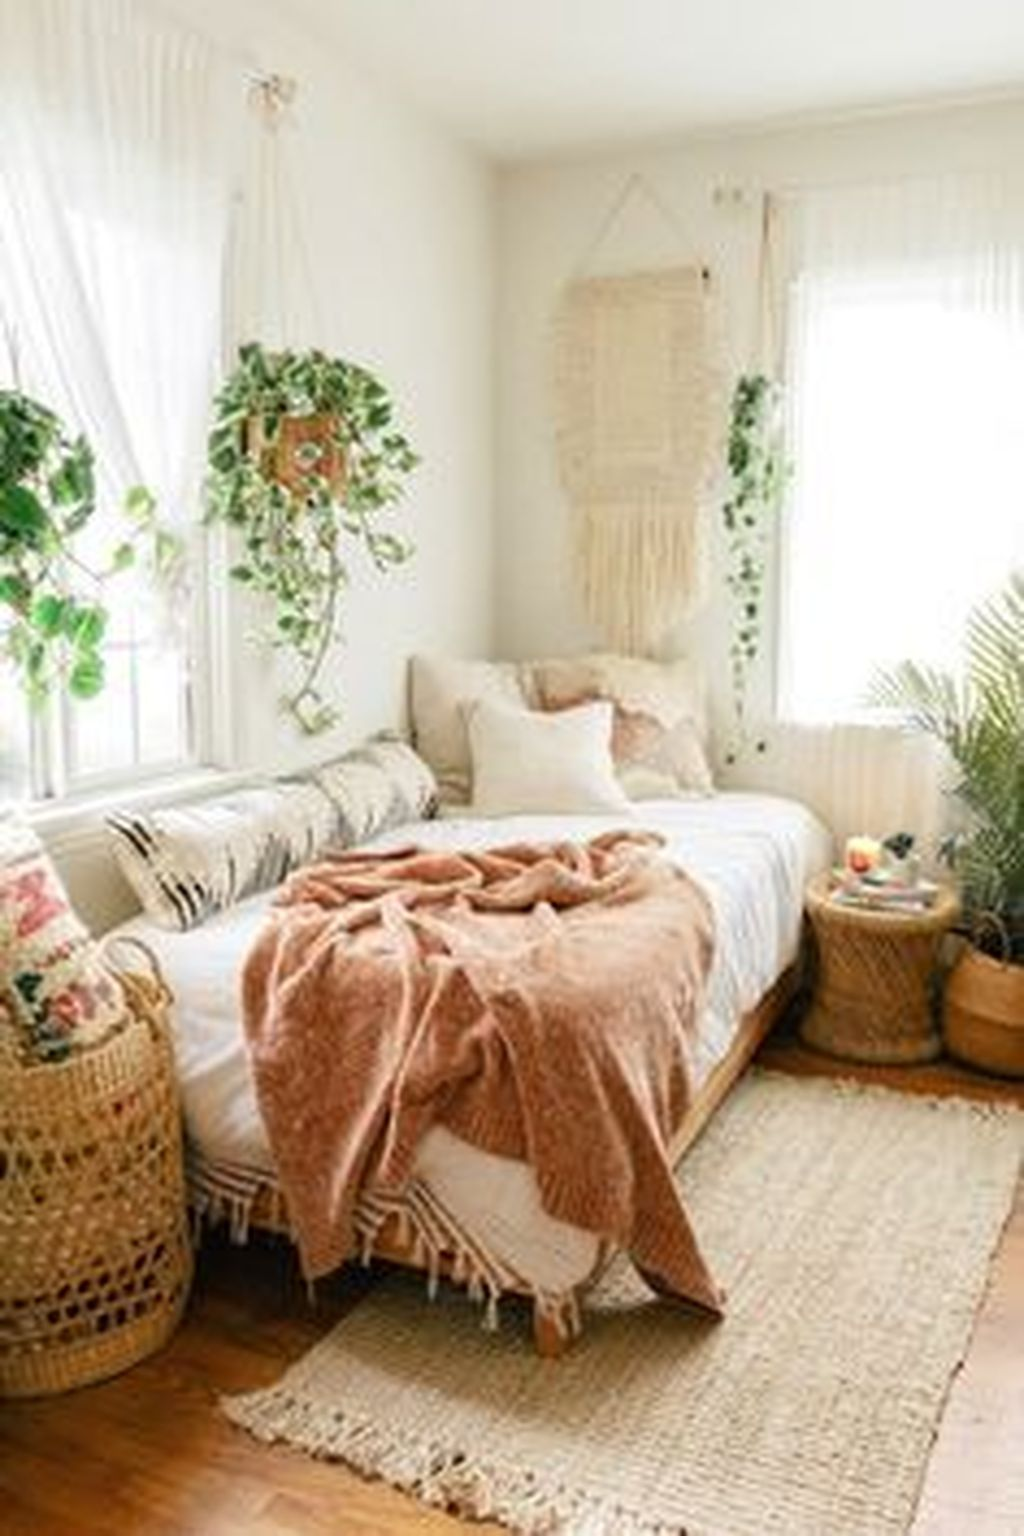 Admirable Small Bedroom Decor Ideas You Never Seen Before 20